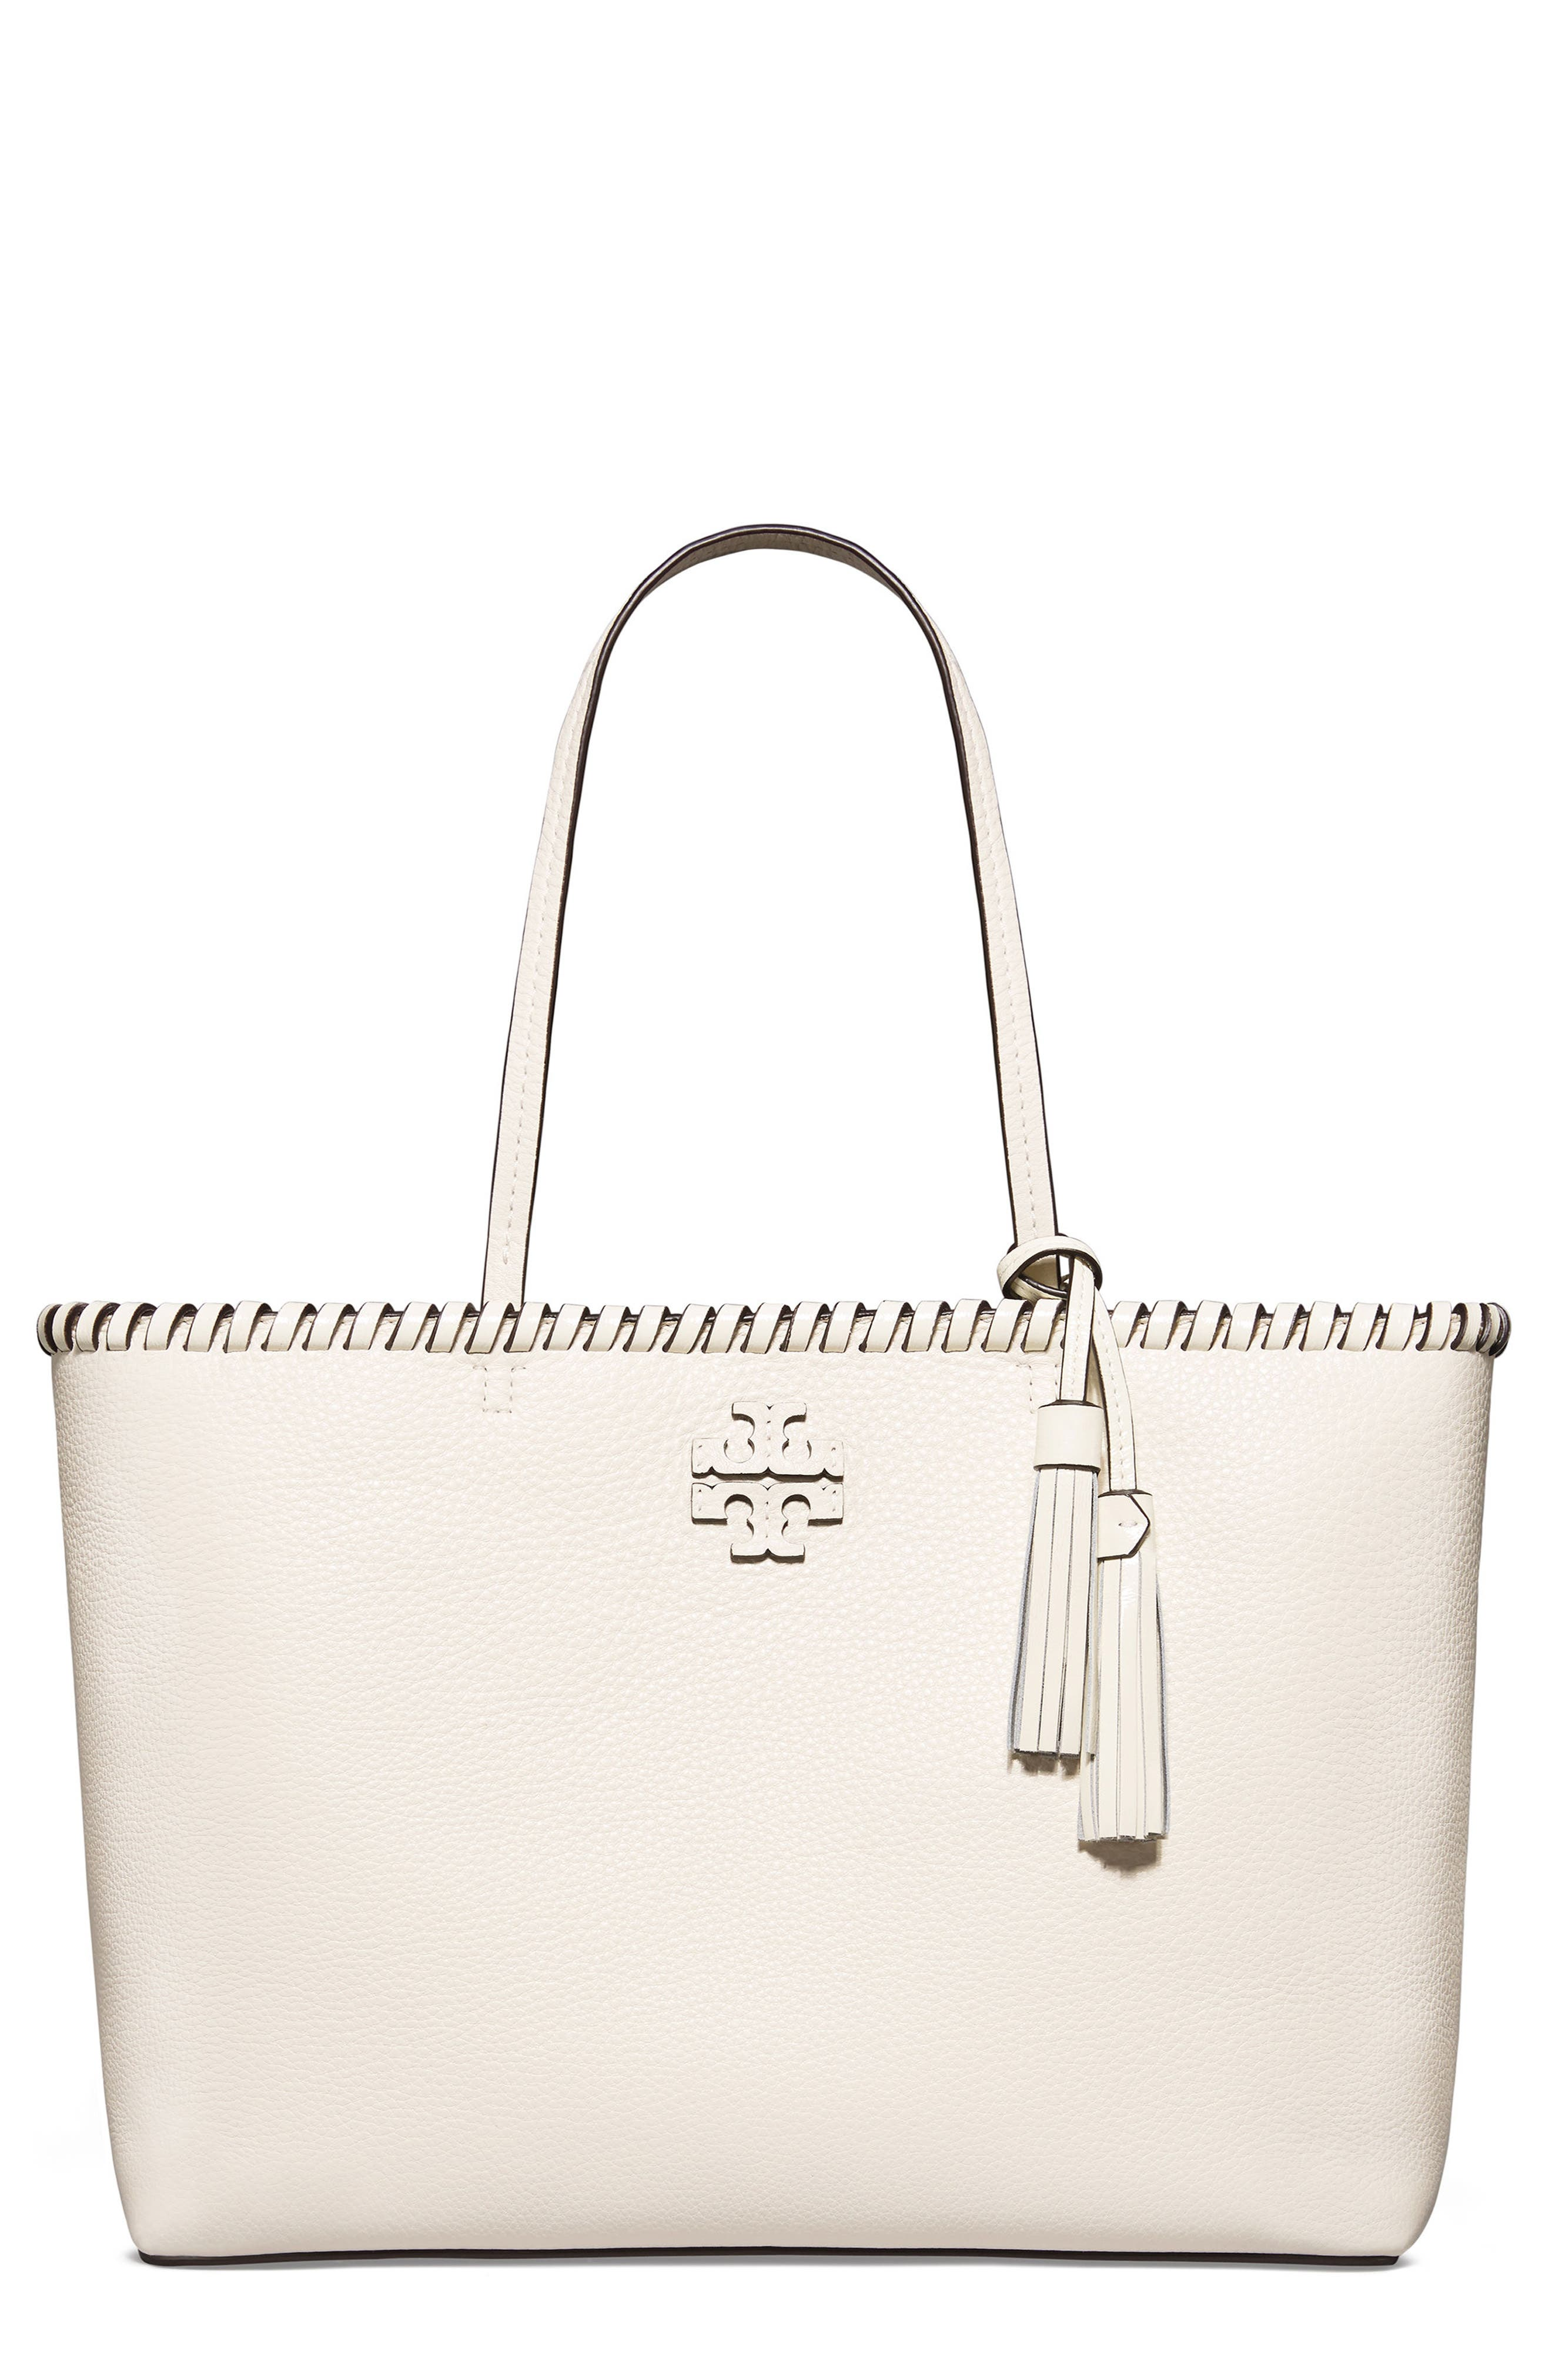 McGraw Whipstitch Leather Tote,                             Main thumbnail 1, color,                             New Ivory